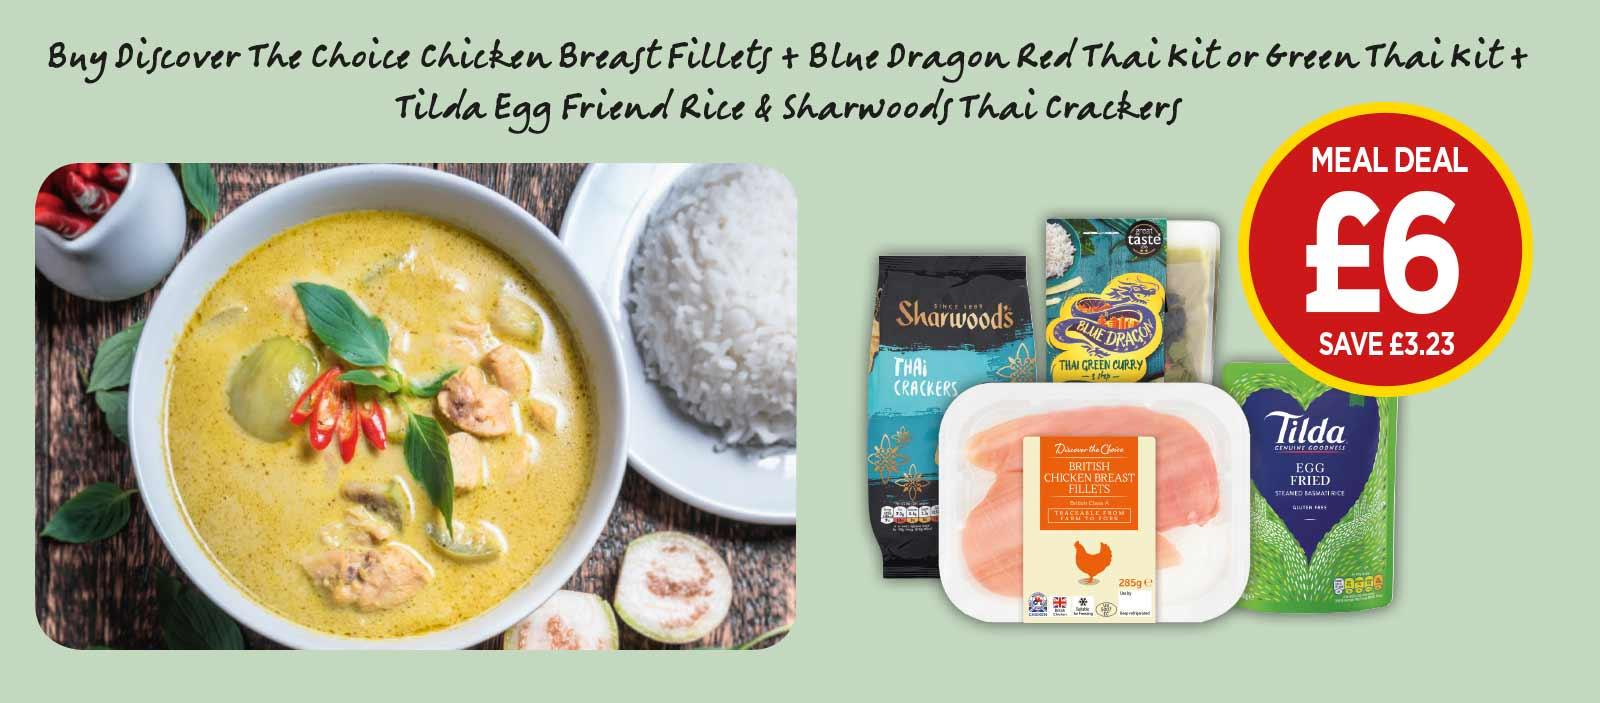 THAI MEAL DEAL: Blue Dragon 3 Step Green Curry, Red Curry, Discover the Choice Chicken Breast Fillets, Tilda Steamed Egg Fried Rice, Sharwoods Thai Crackers - £6 at Budgens